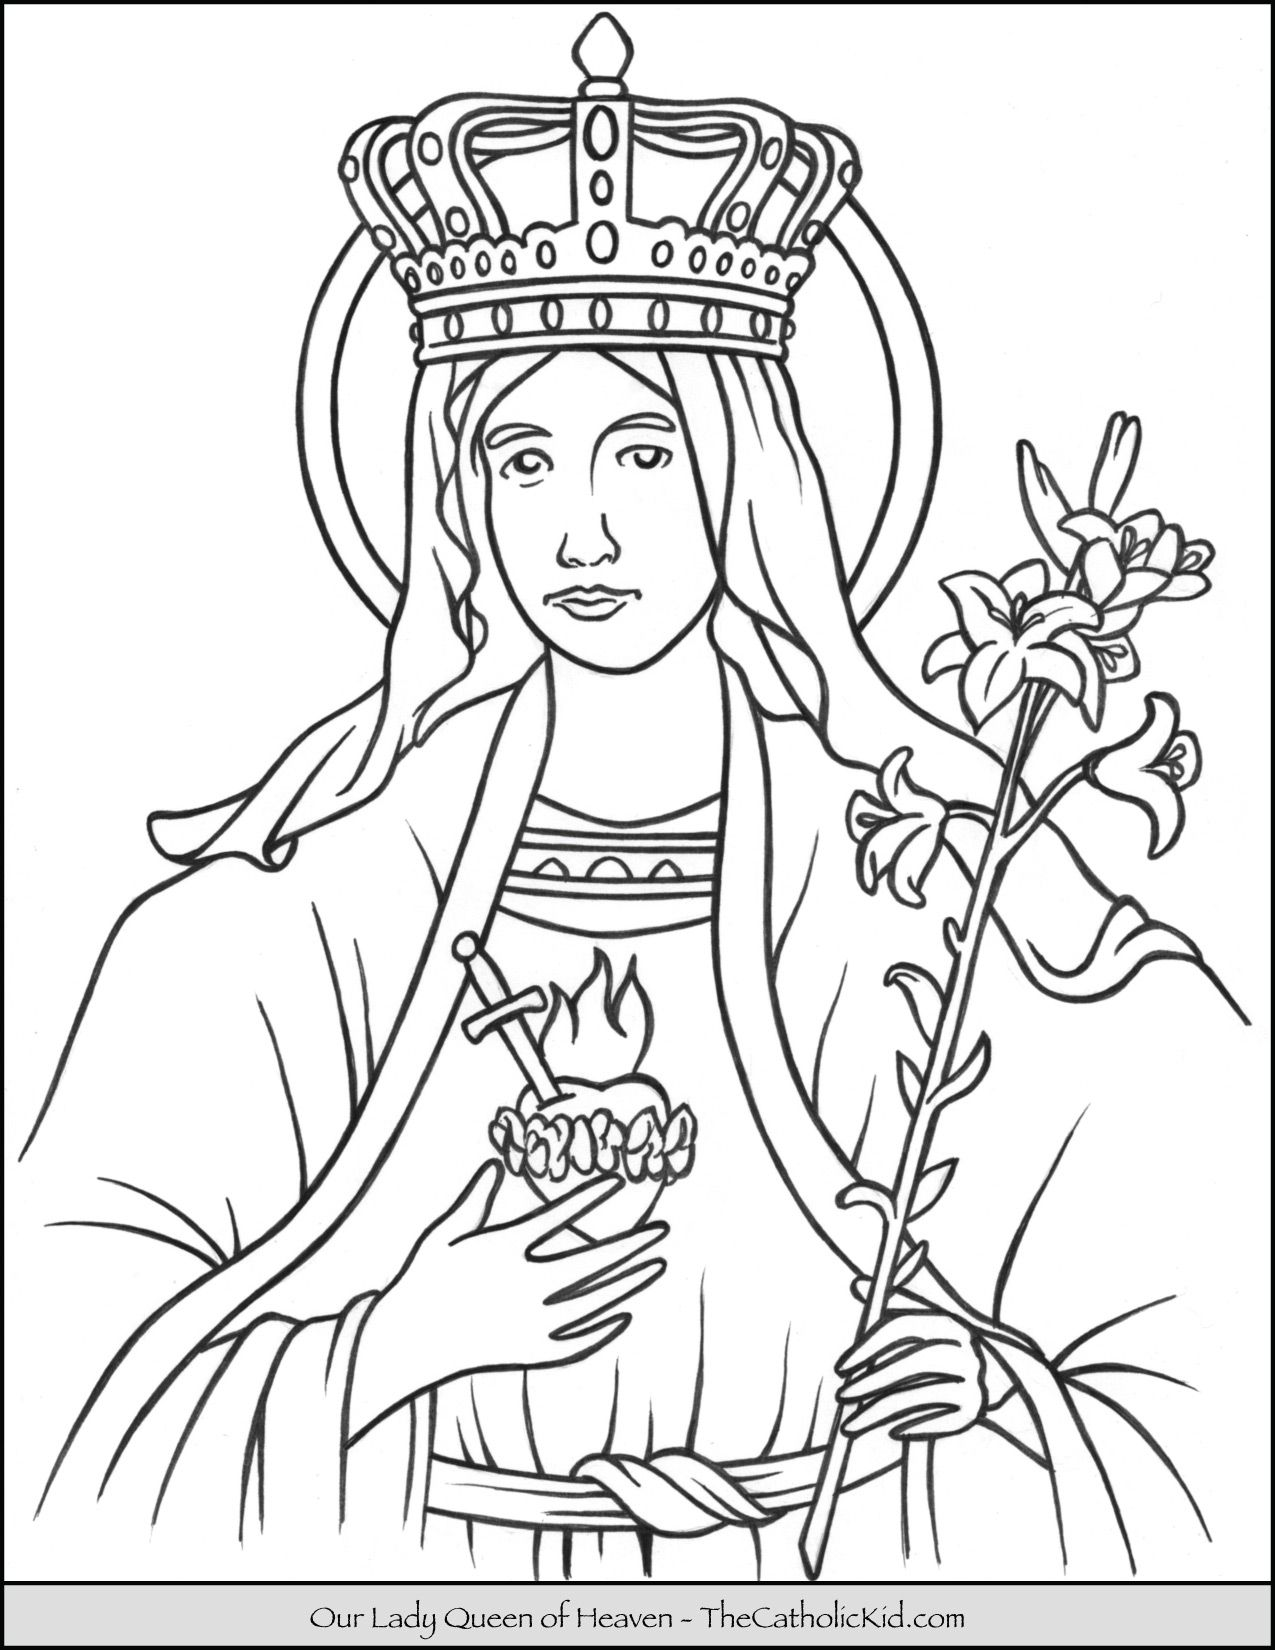 Our Lady Queen Of Heaven Coloring Page Coloring Pages Queen Of Heaven Jesus Coloring Pages